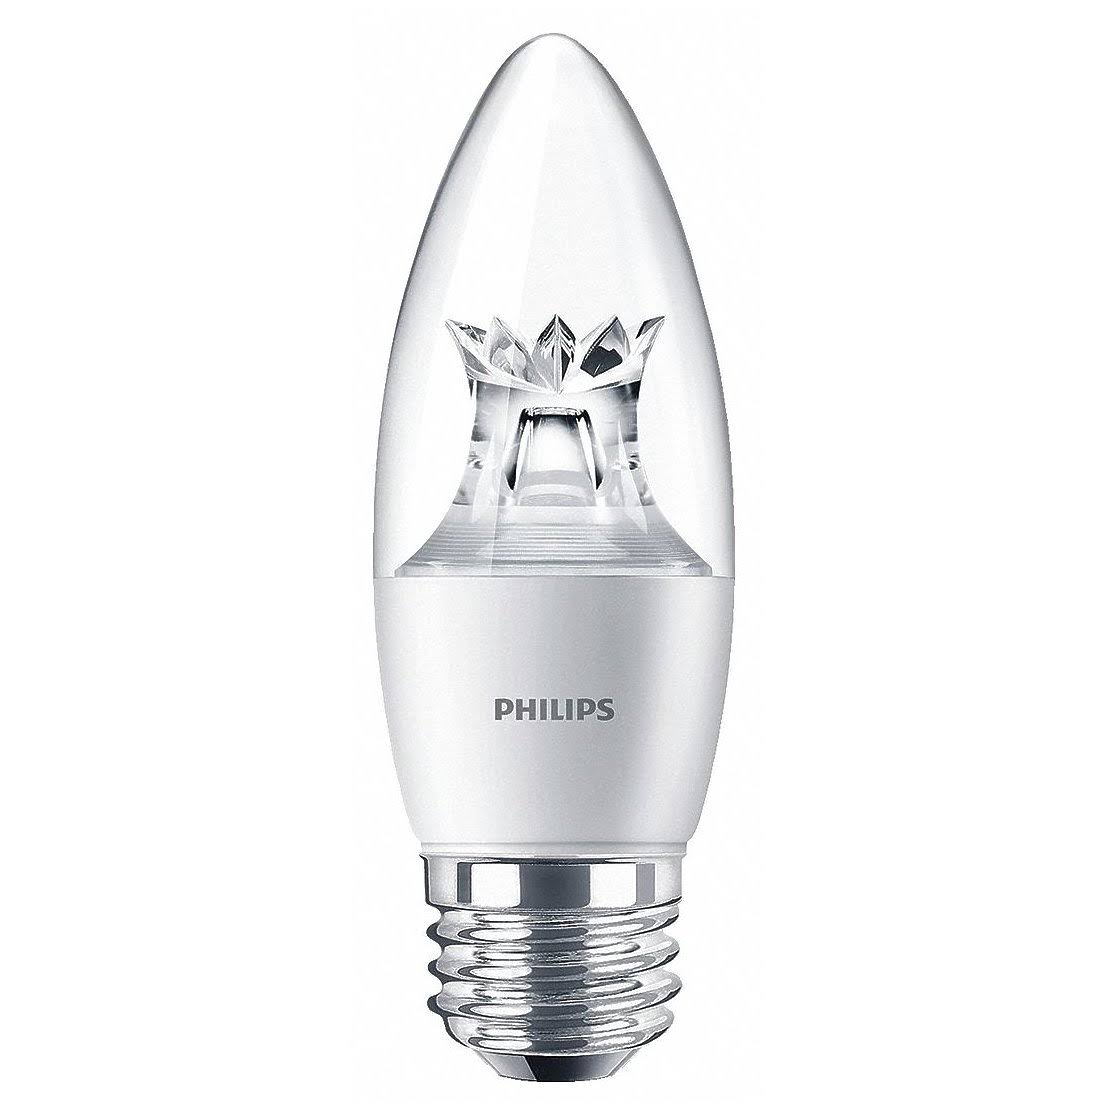 Philips Dimmable Candle B12 LED Light Bulb